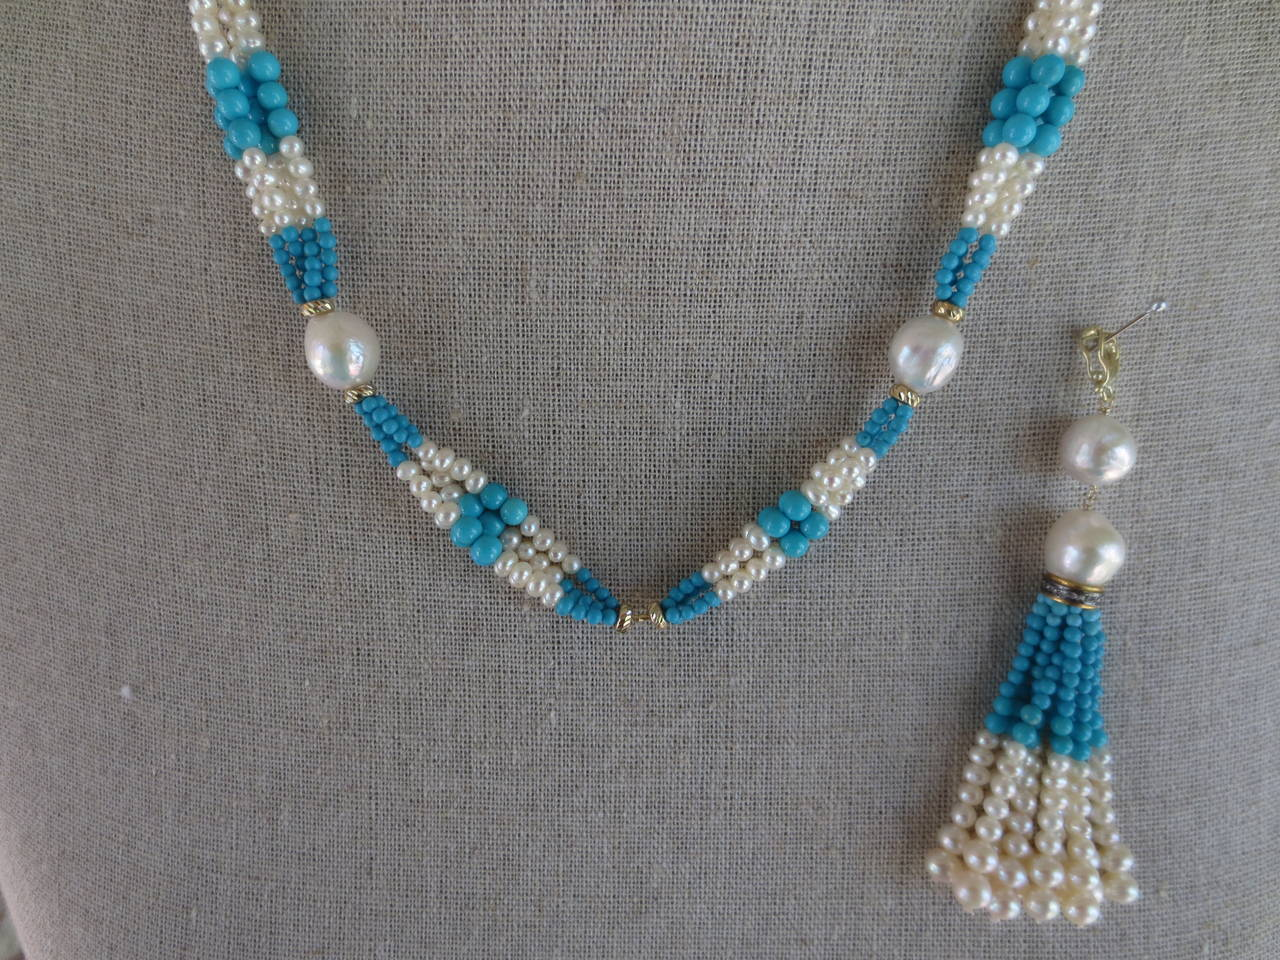 Woven Cluster Pearl and Turquoise Sautoir with Baroque Pearl Highlights 8